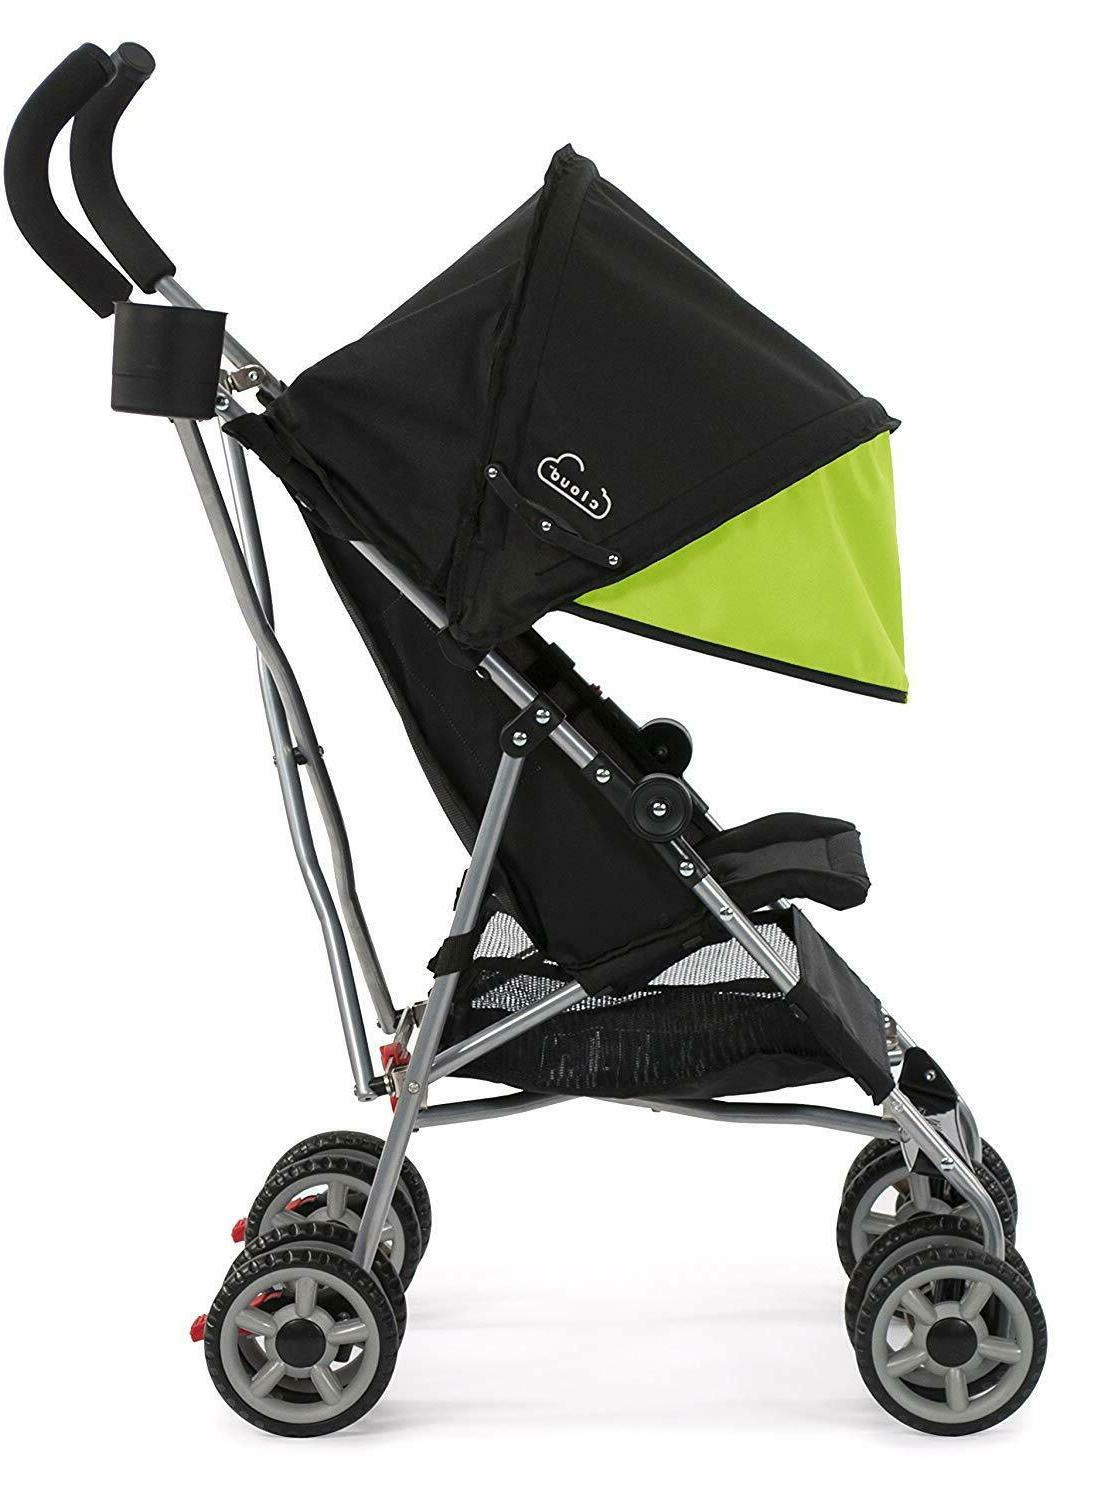 Kolcraft Stroller with Canopy, Spring